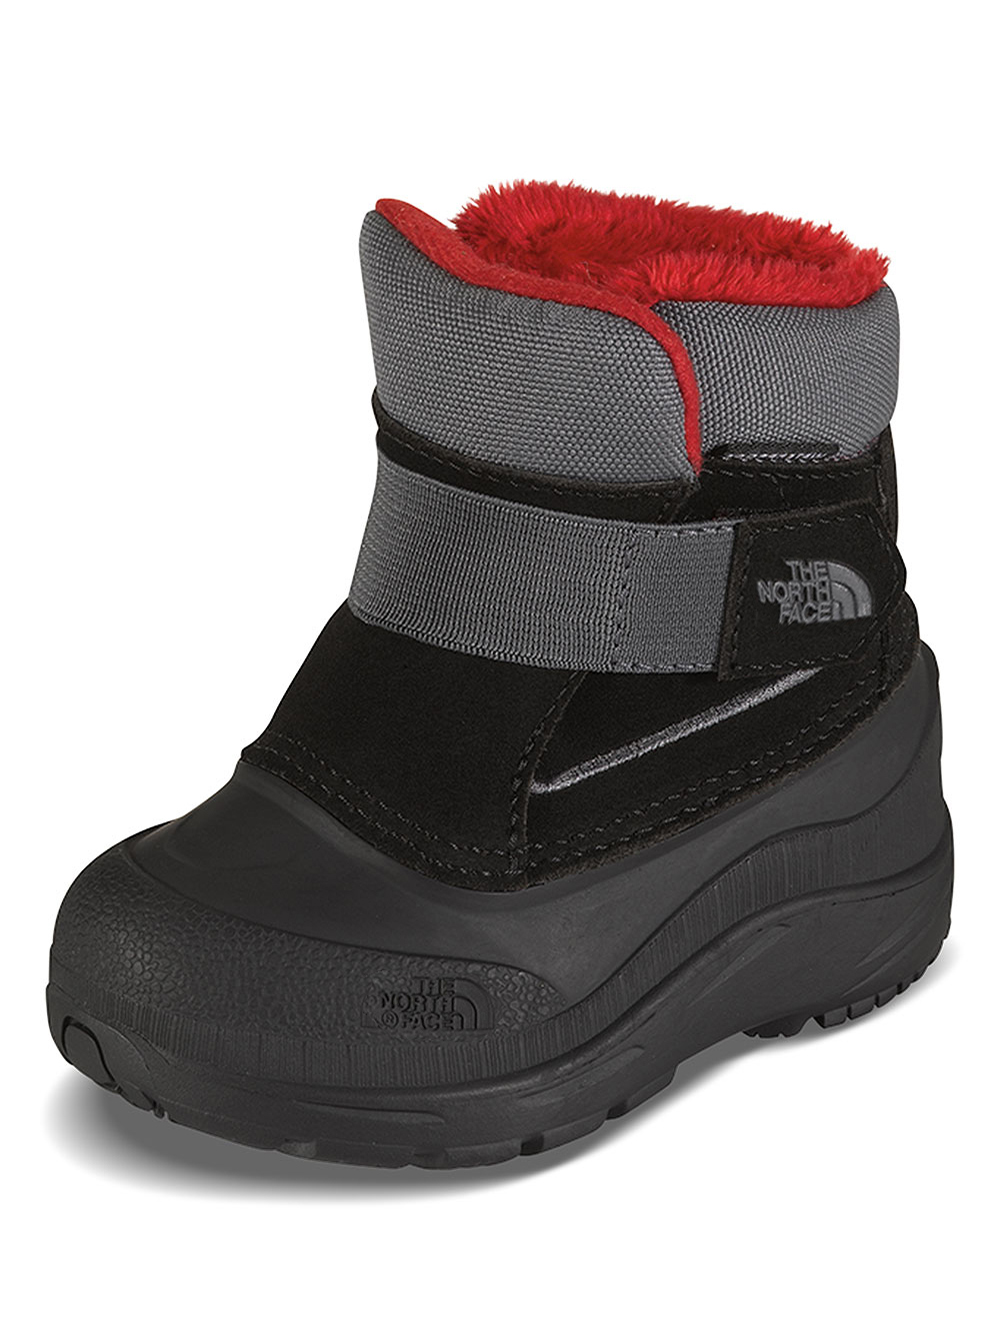 The North Face Boys' Toddler Alpenglow Boots (Toddler Sizes 10 - 12) - black/zinc gray, 9 toddler